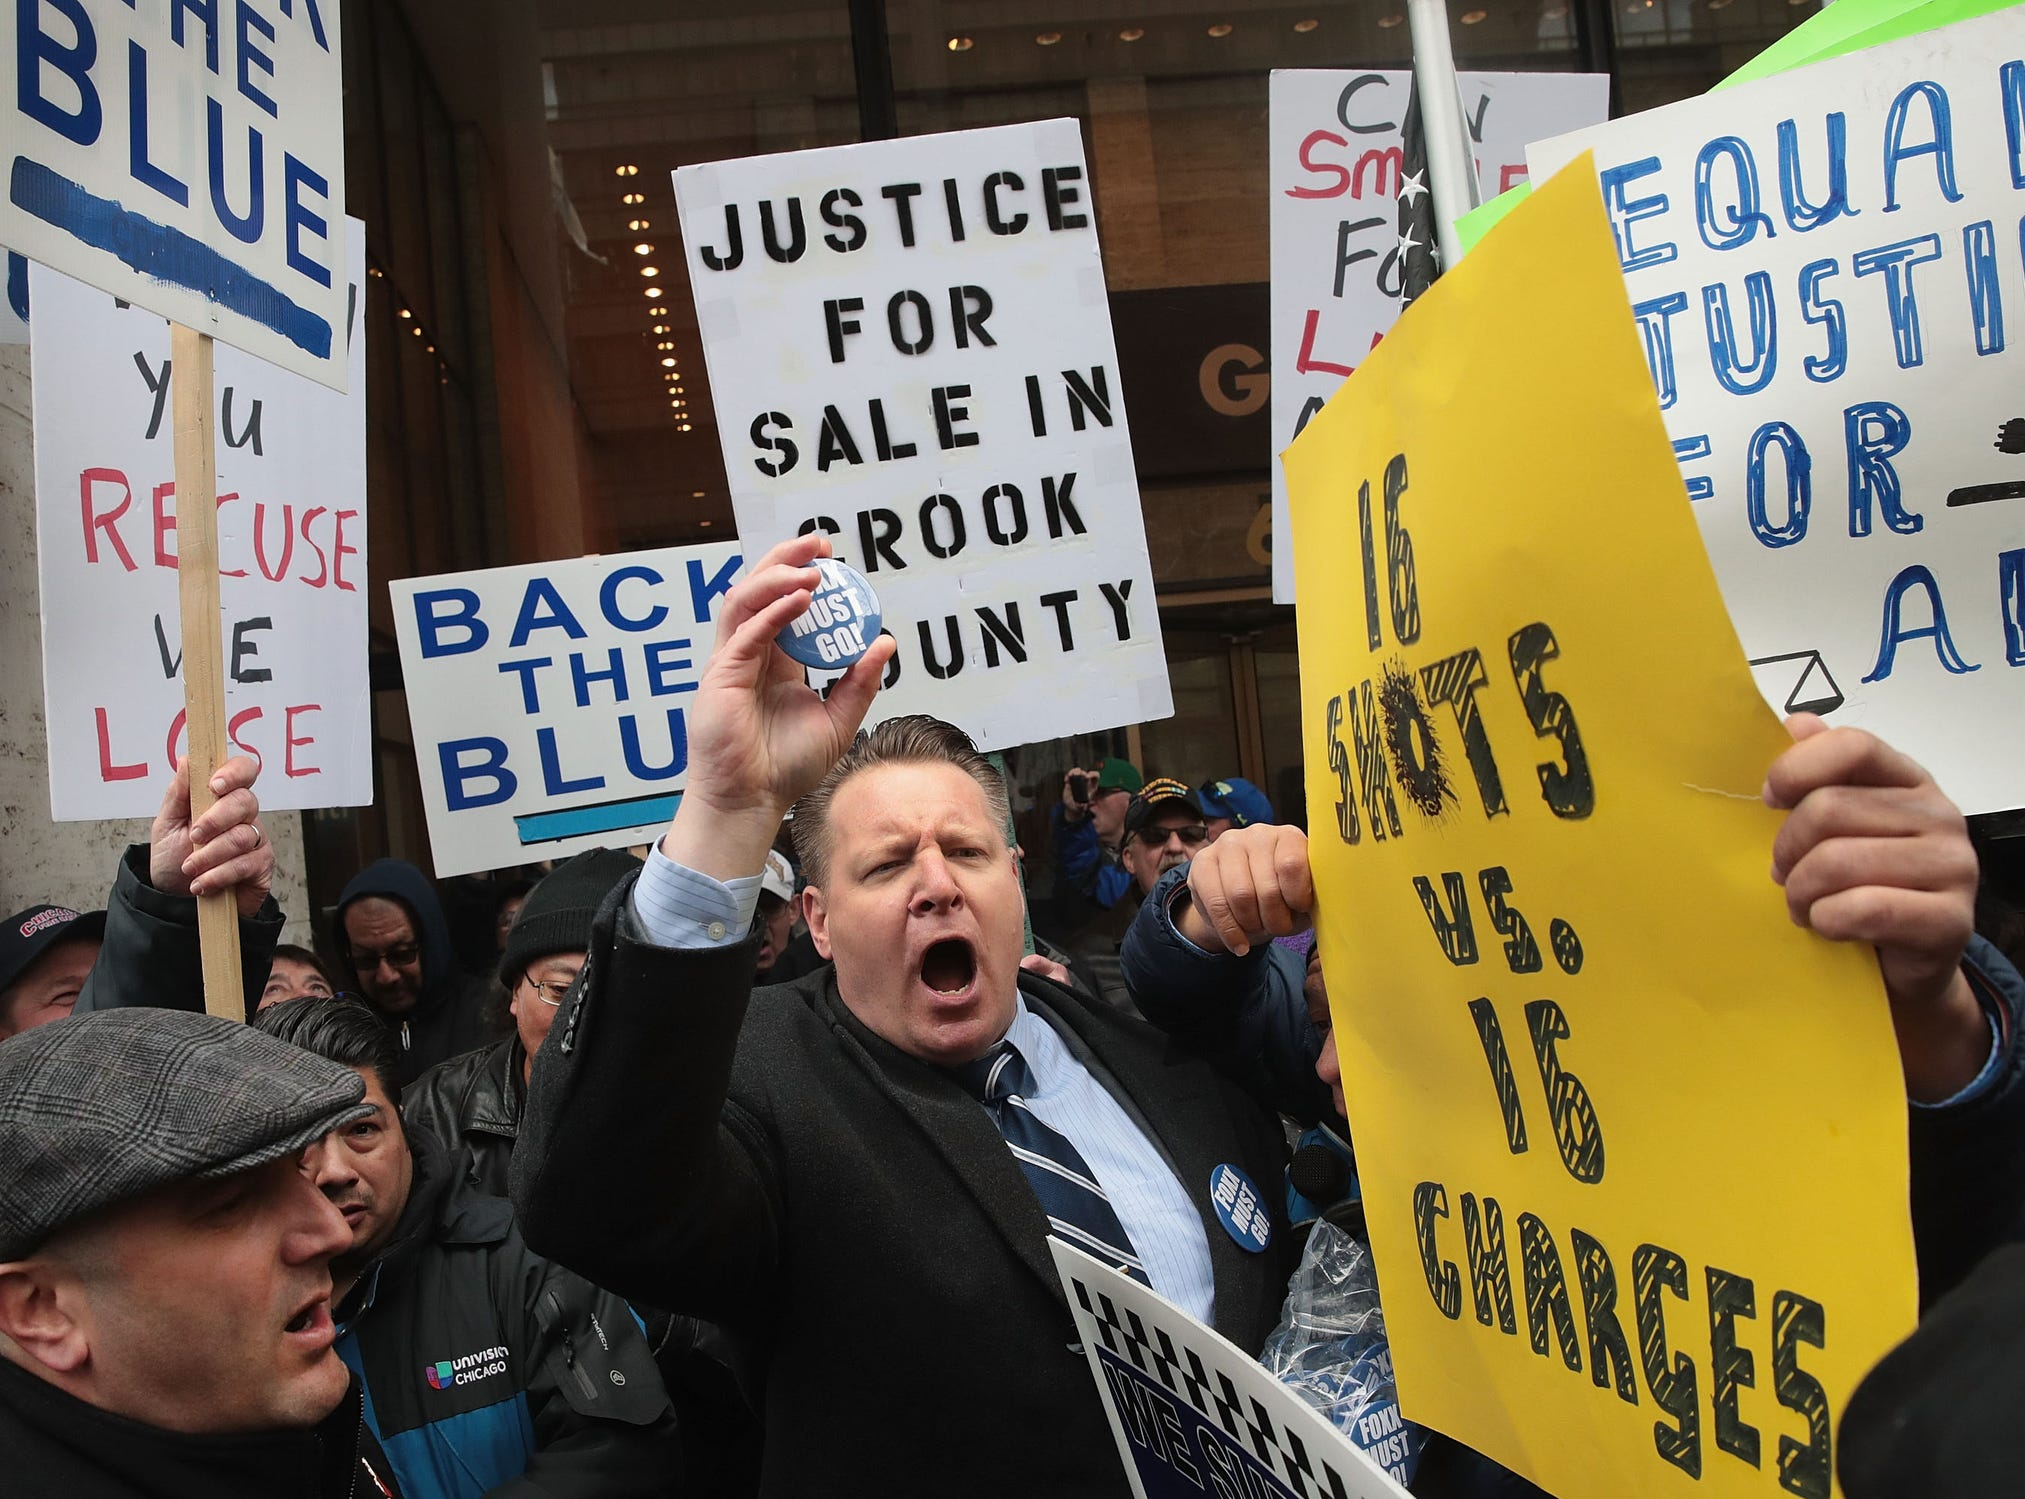 Protestors argue with supporters of Cook County State's Attorney Kim Foxx during a demonstration organized by the Fraternal Order of Police to call for Foxx's removal on April 1, 2019 in Chicago.